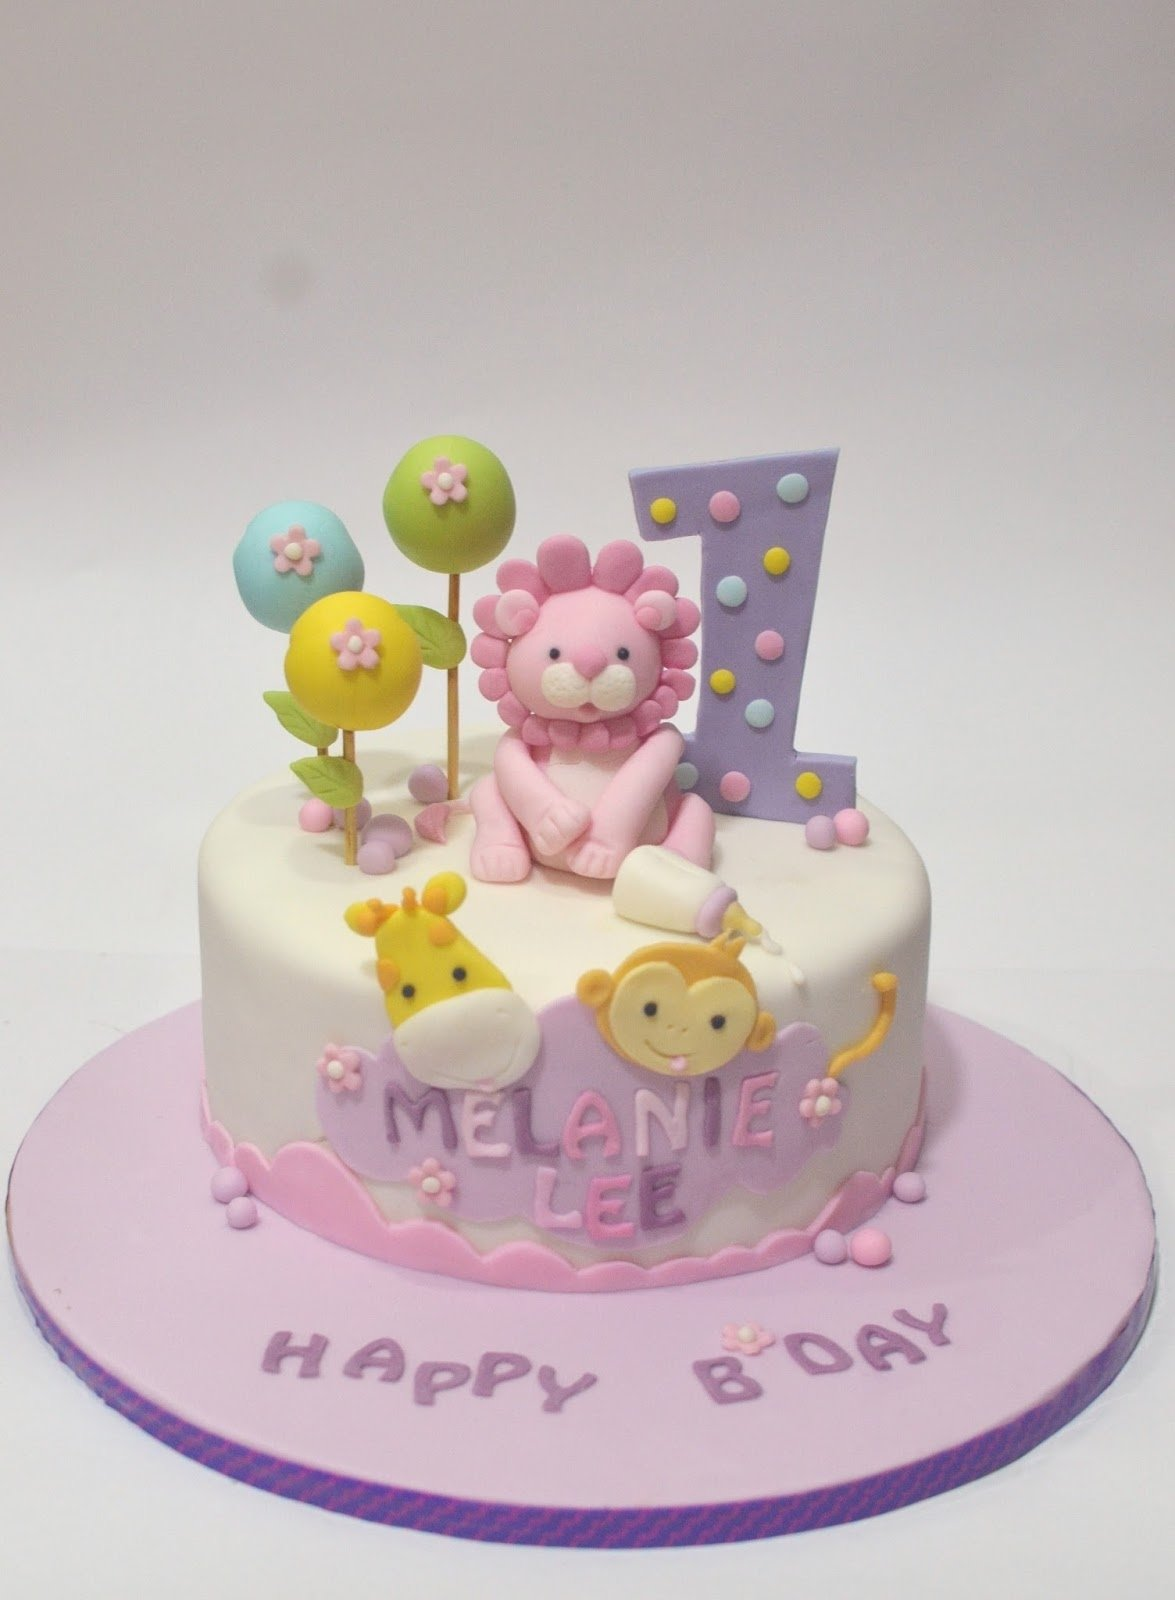 10 Famous 1 Year Old Birthday Cake Ideas mom and daughter cakes cute safari animals cake for one year old